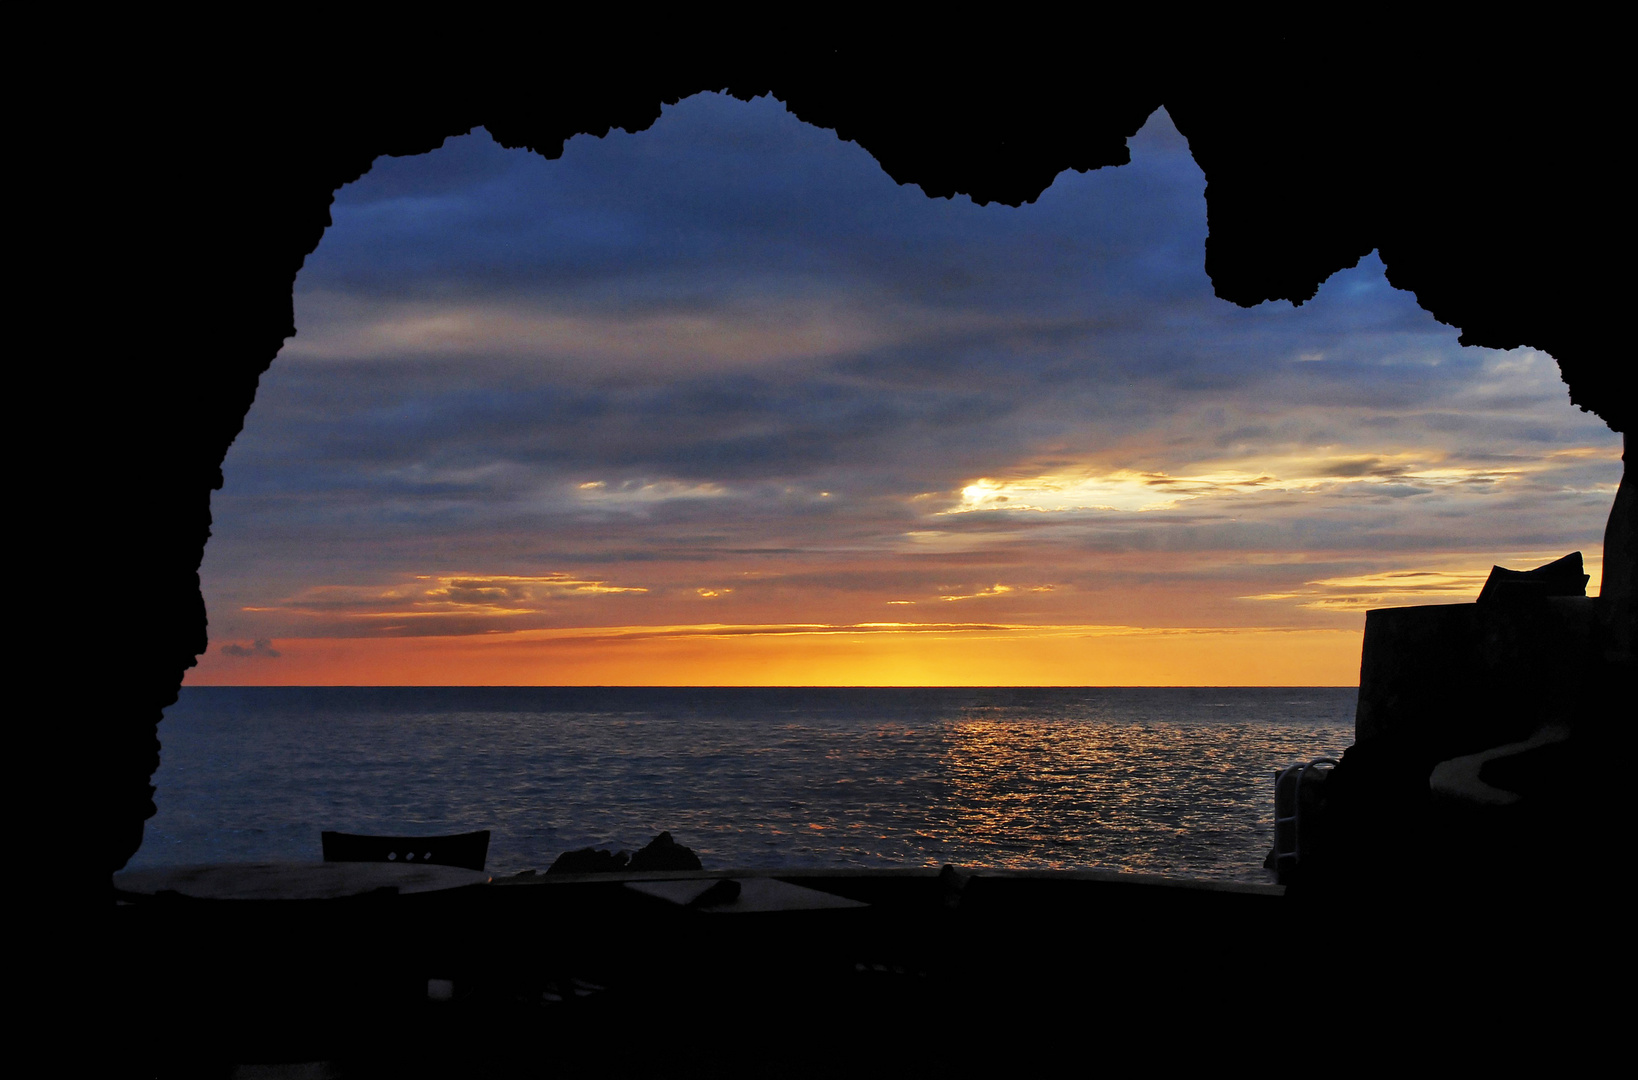 The Caves Hotel at sunset Negril